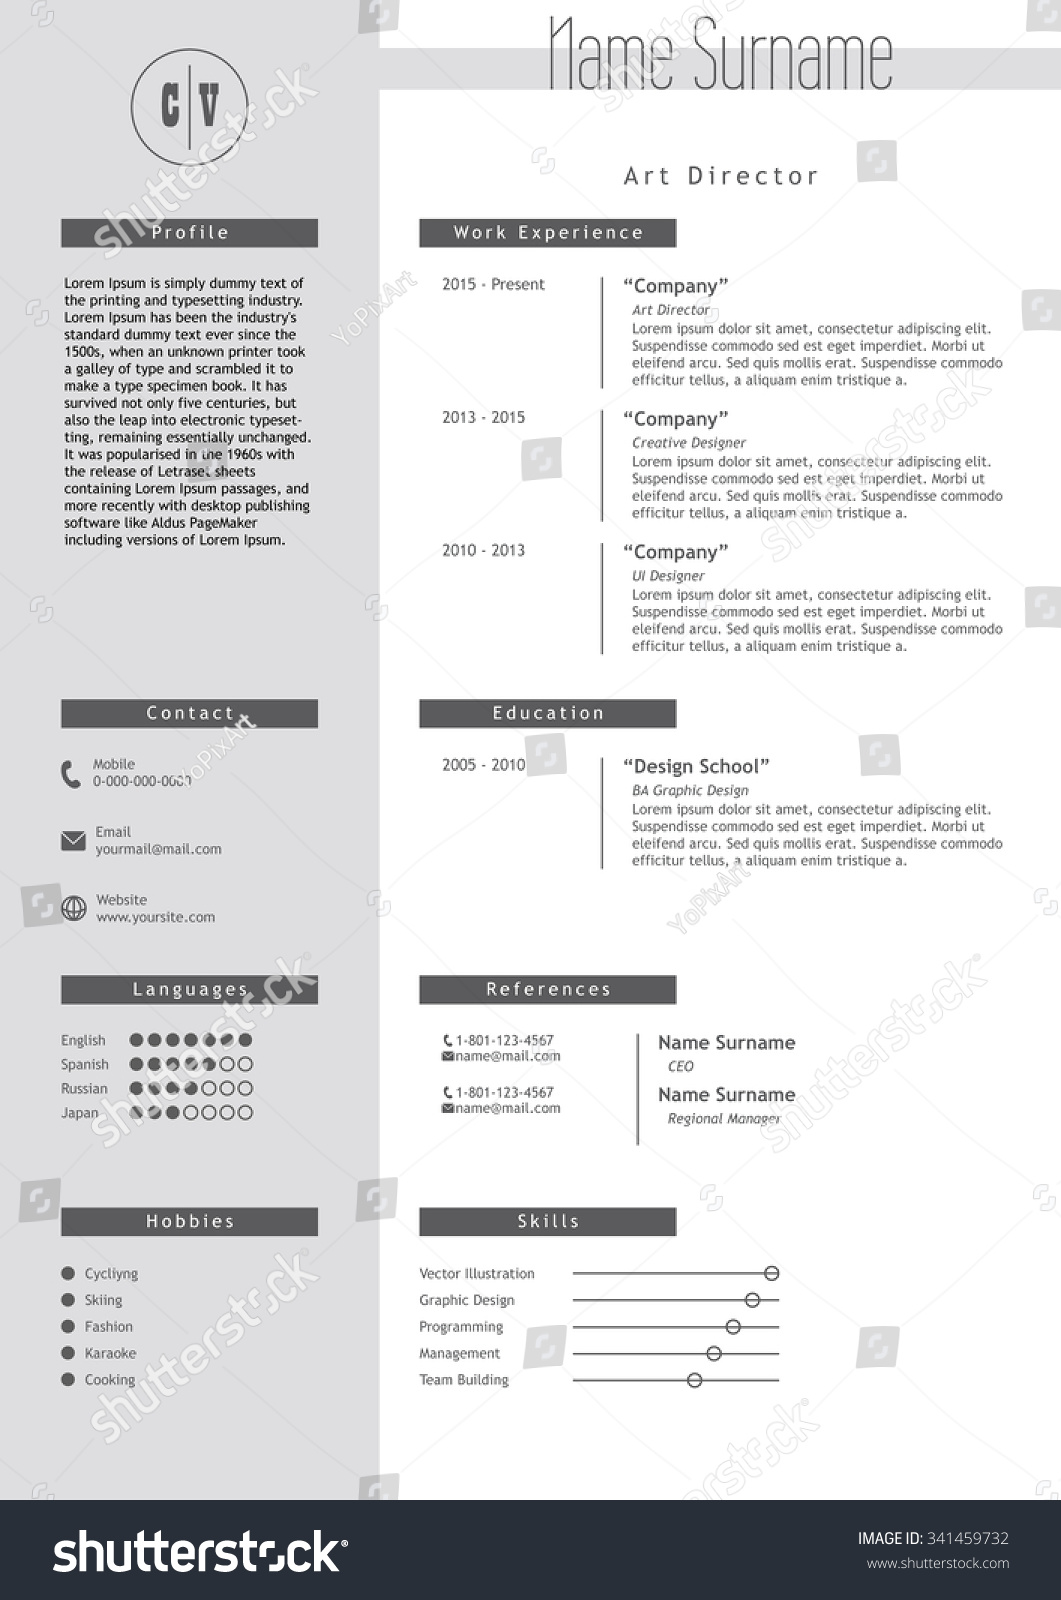 resume Infographic Style Resume vector creative resume template minimalistic gray stock photo and white style cv light infographic elements